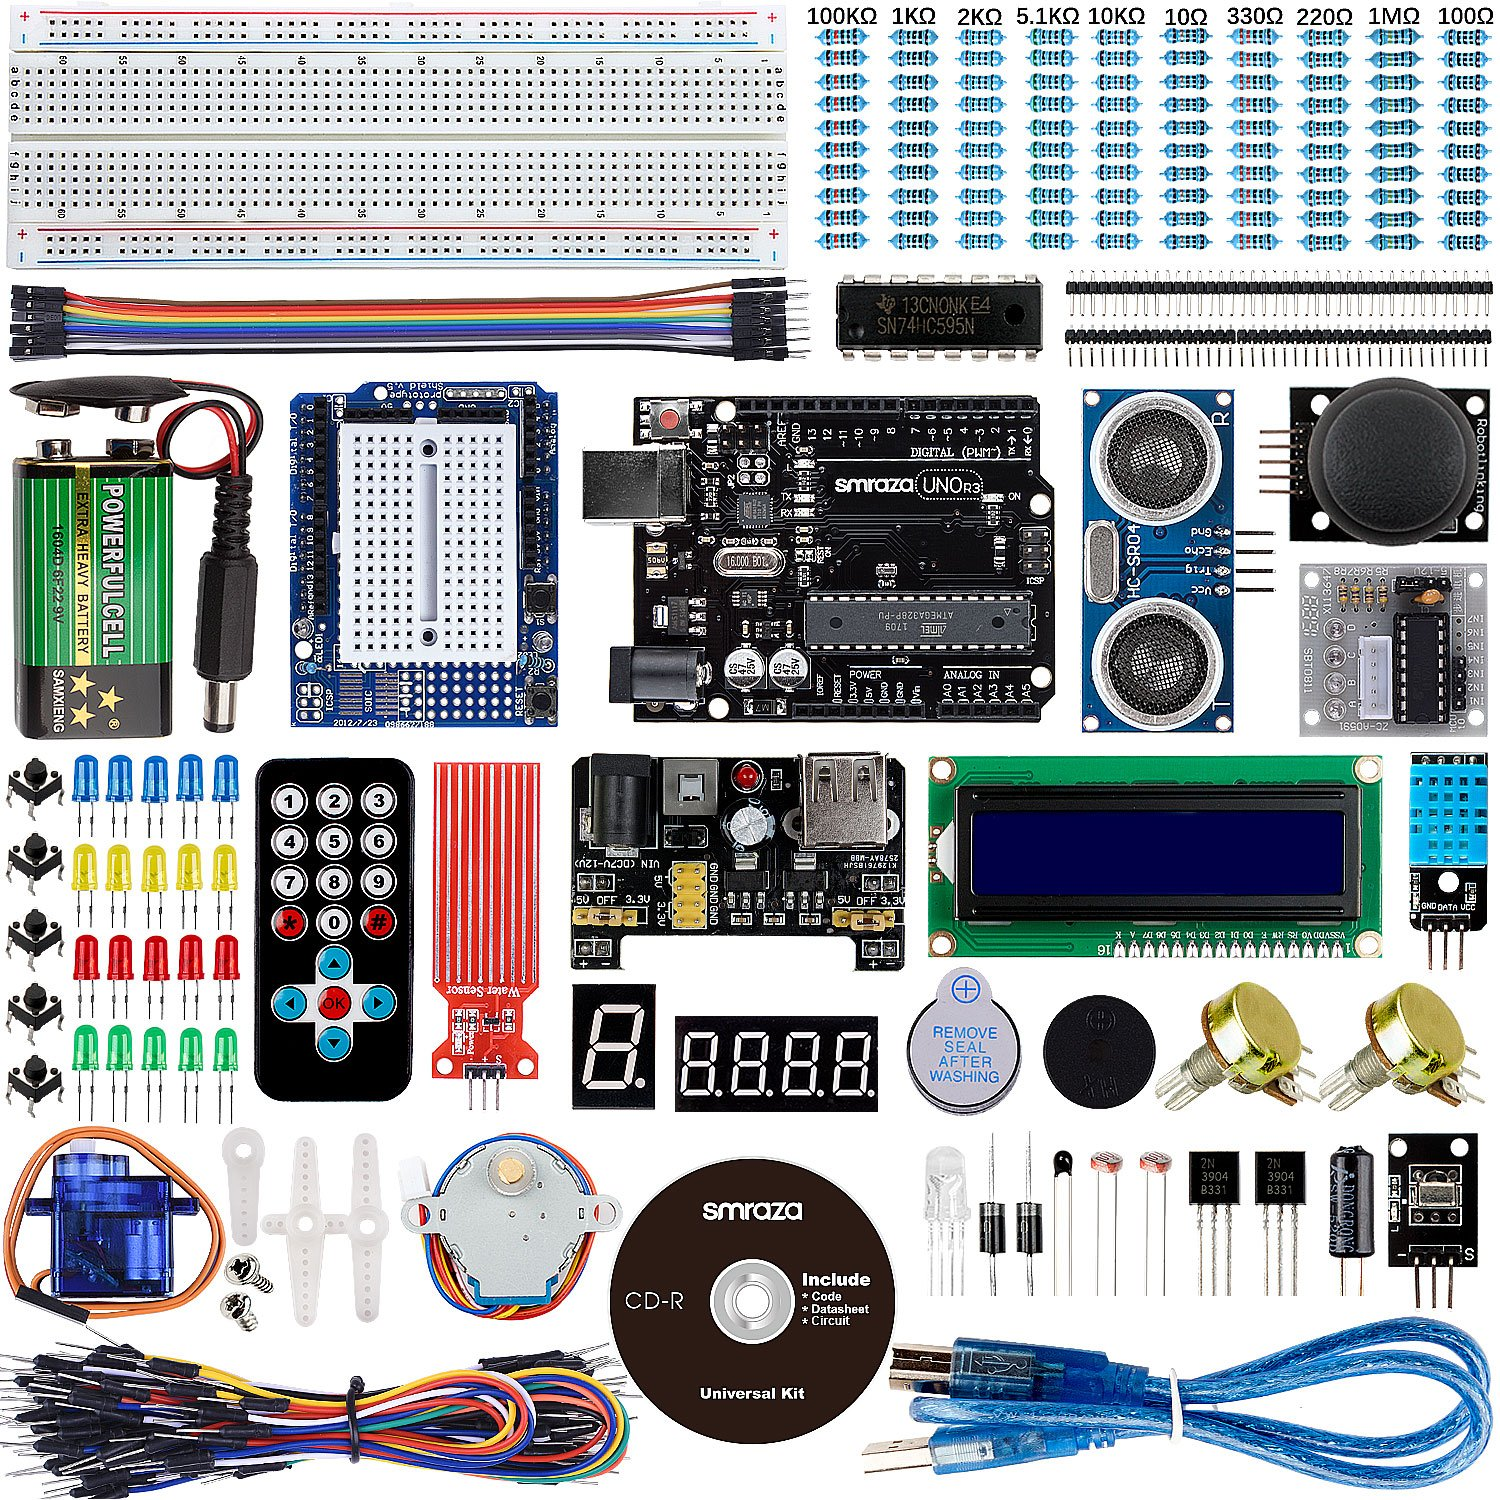 smraza ultimate uno project starter kit for arduino with stepper